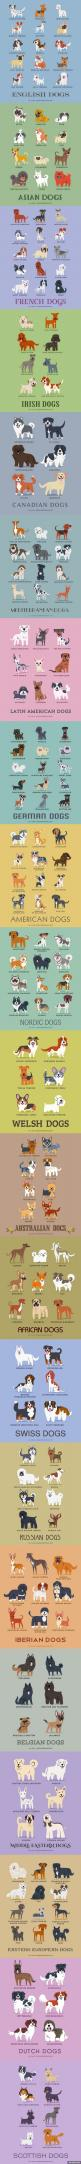 why do I feel like this is the most important thing I've come across on pinterest?: Doggie, Beagle Dog, Puppy Breed, Dog Breeds, Animal, Scottish Dog